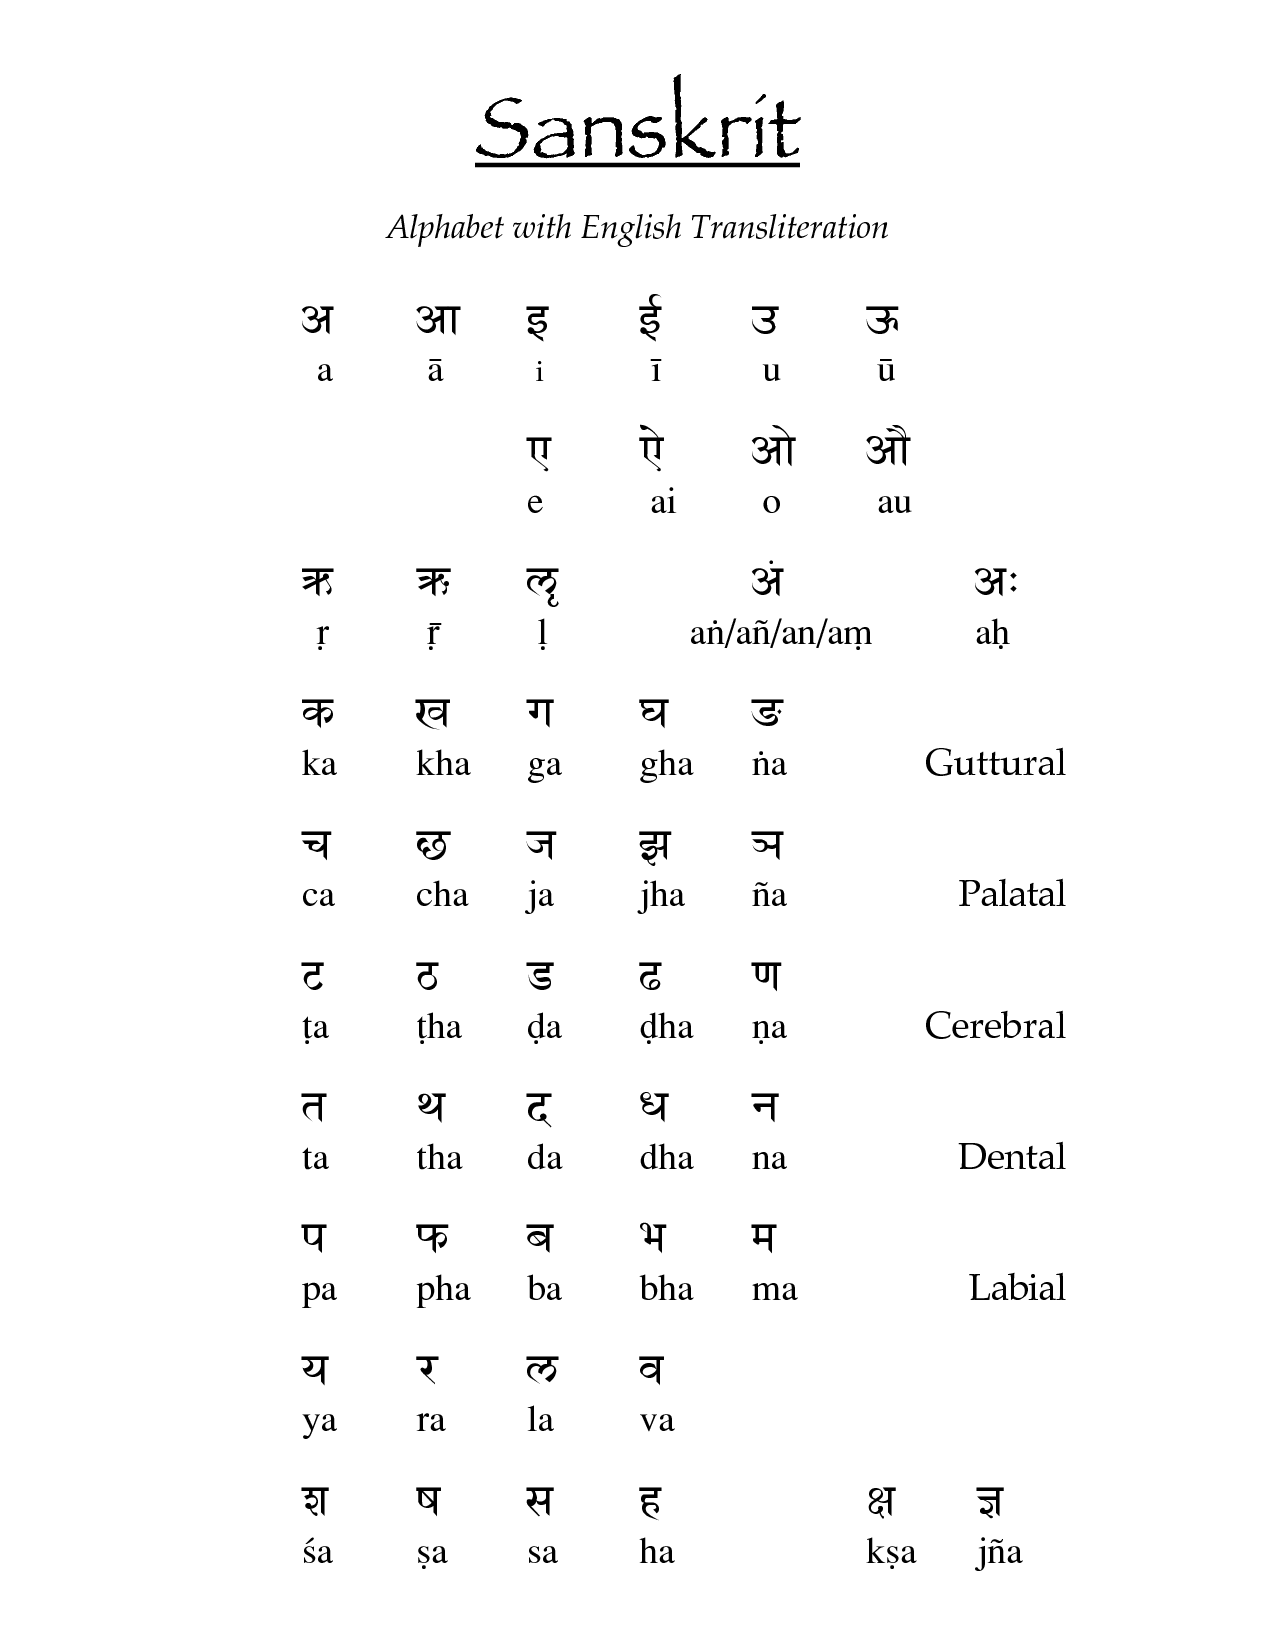 This Pin Shows The Sanskrit Language And Also Shows Each